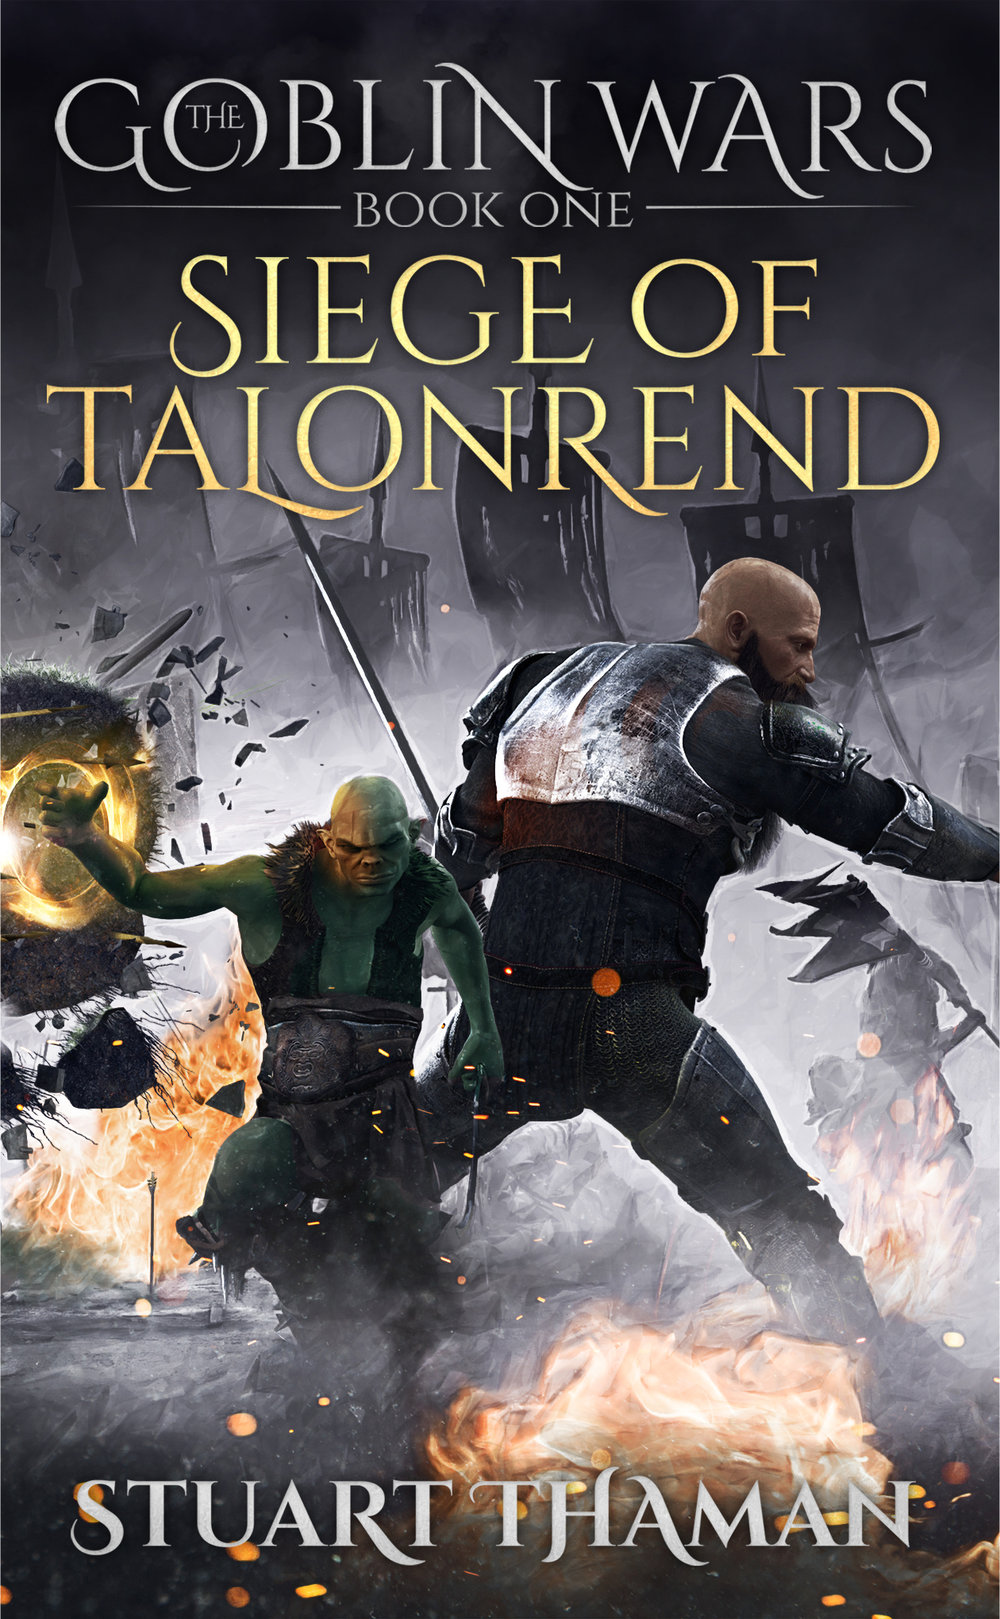 Copy of Siege of Talonrend